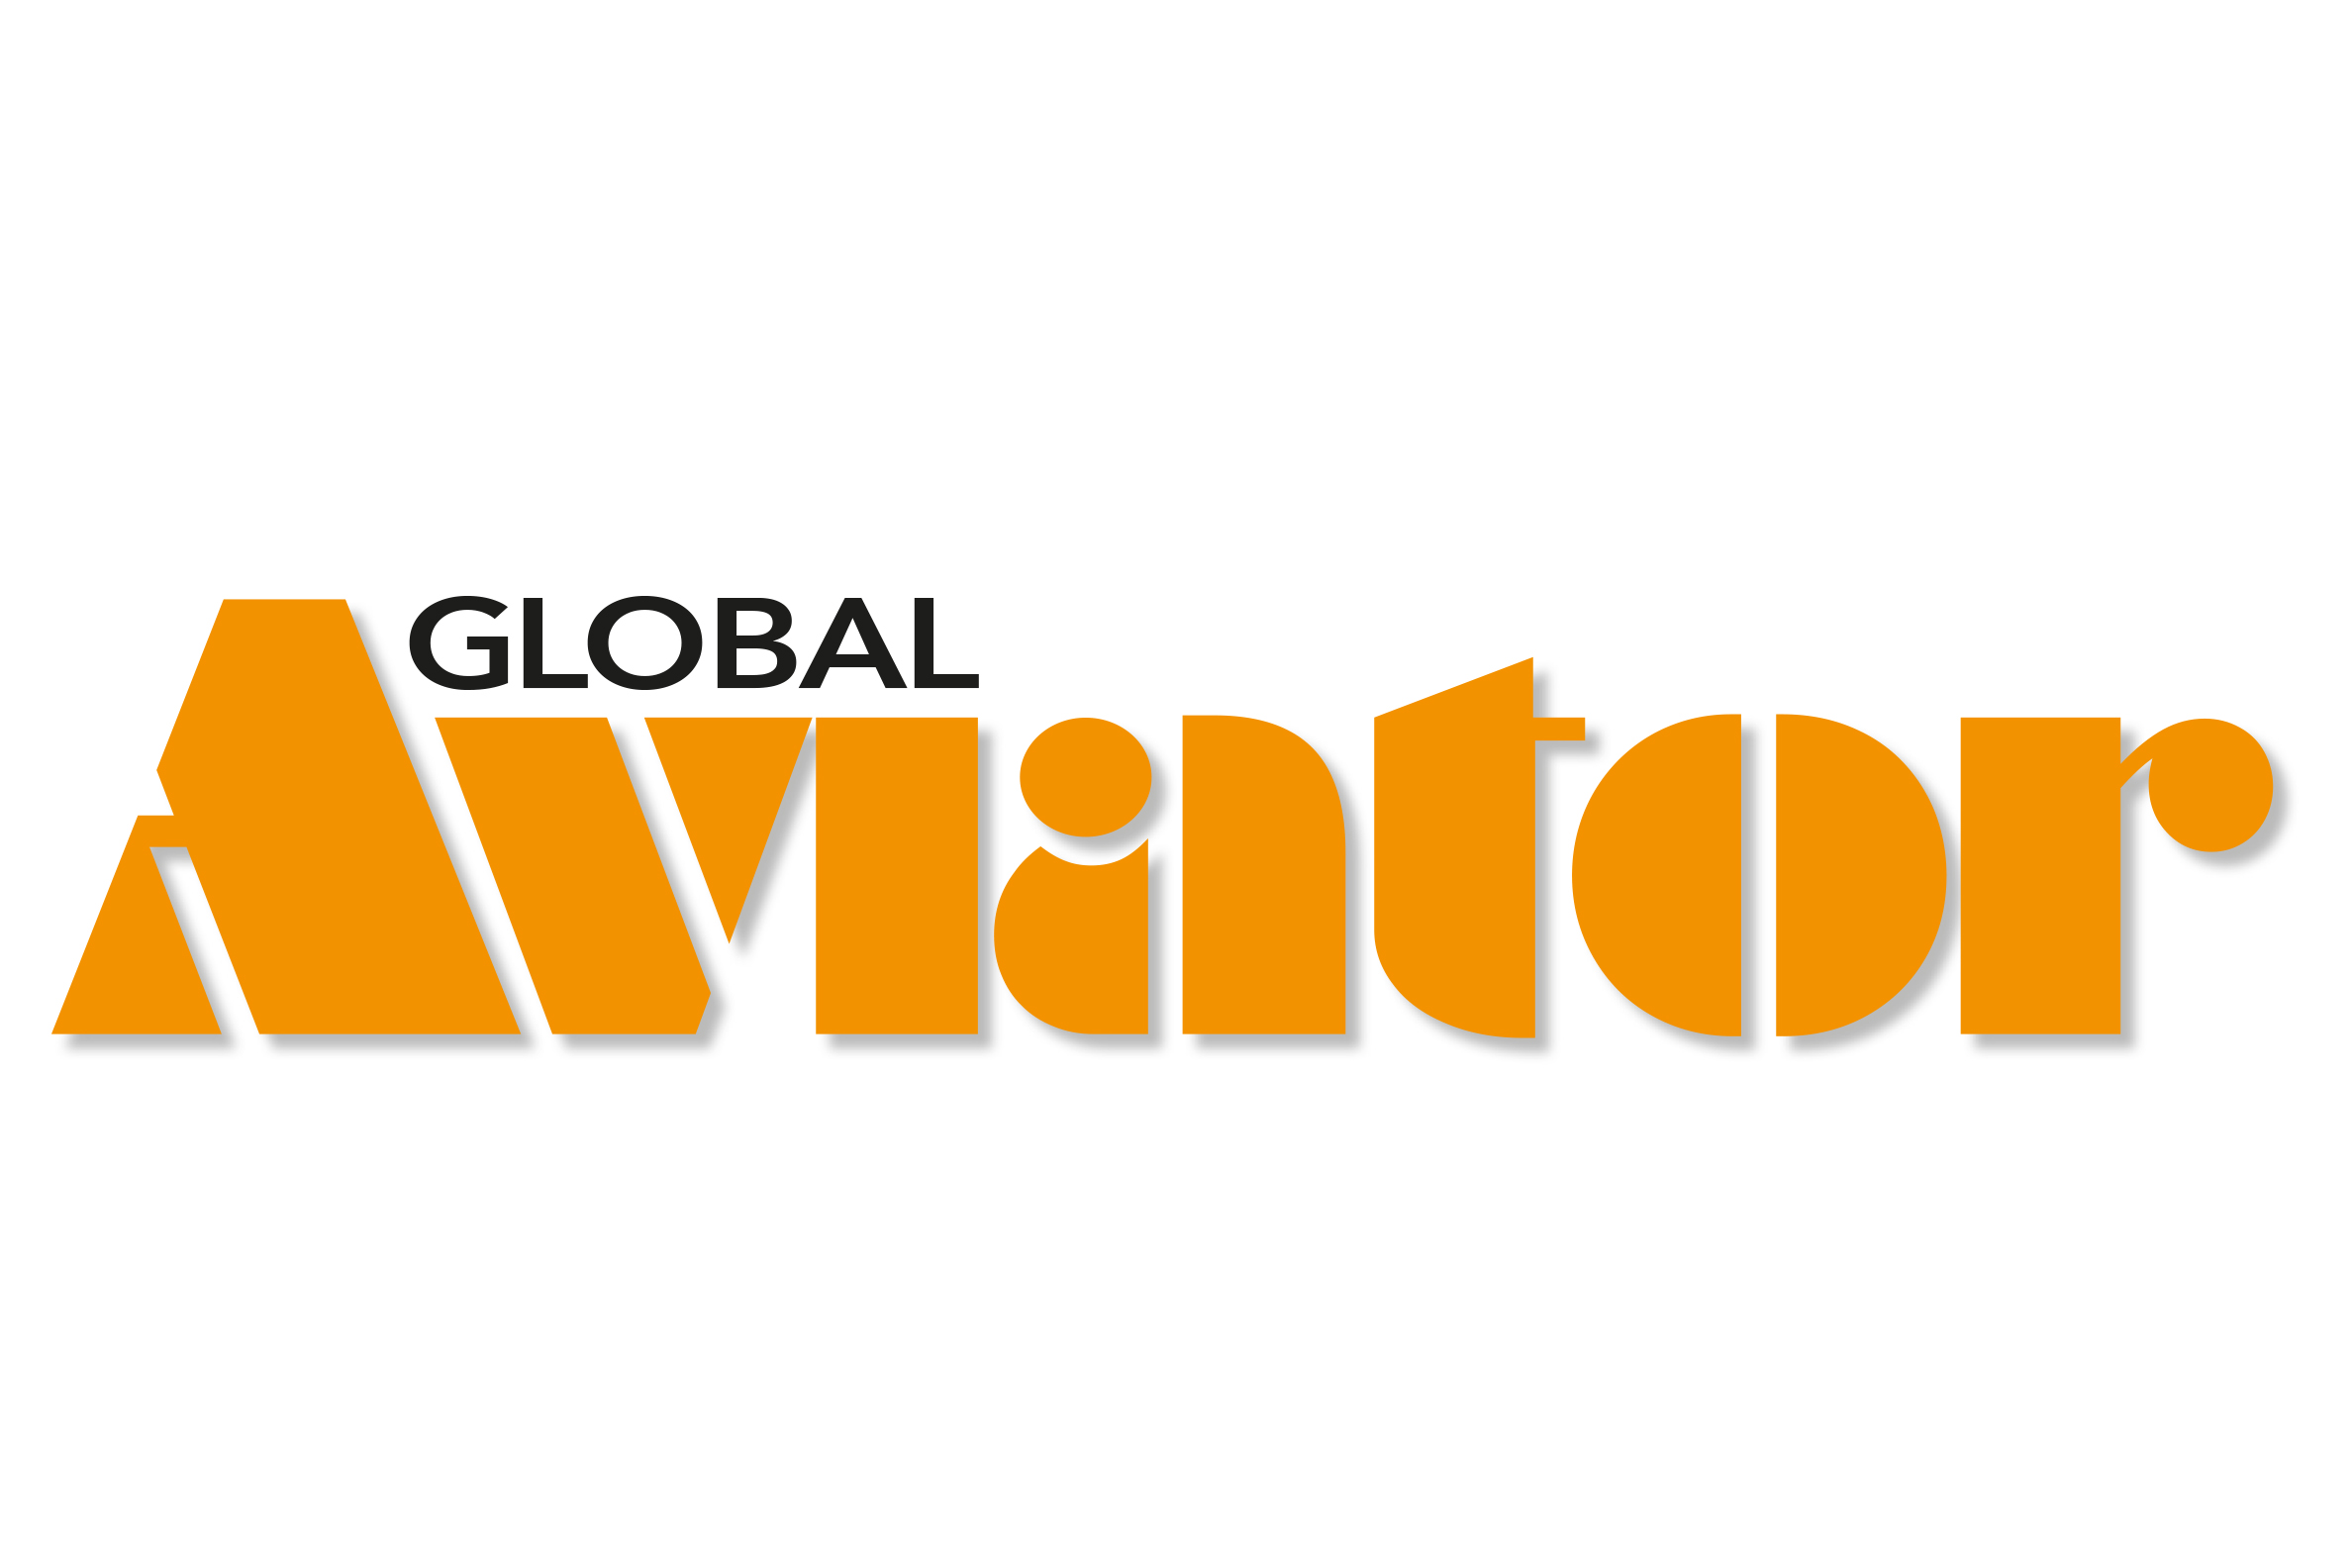 Global Aviator